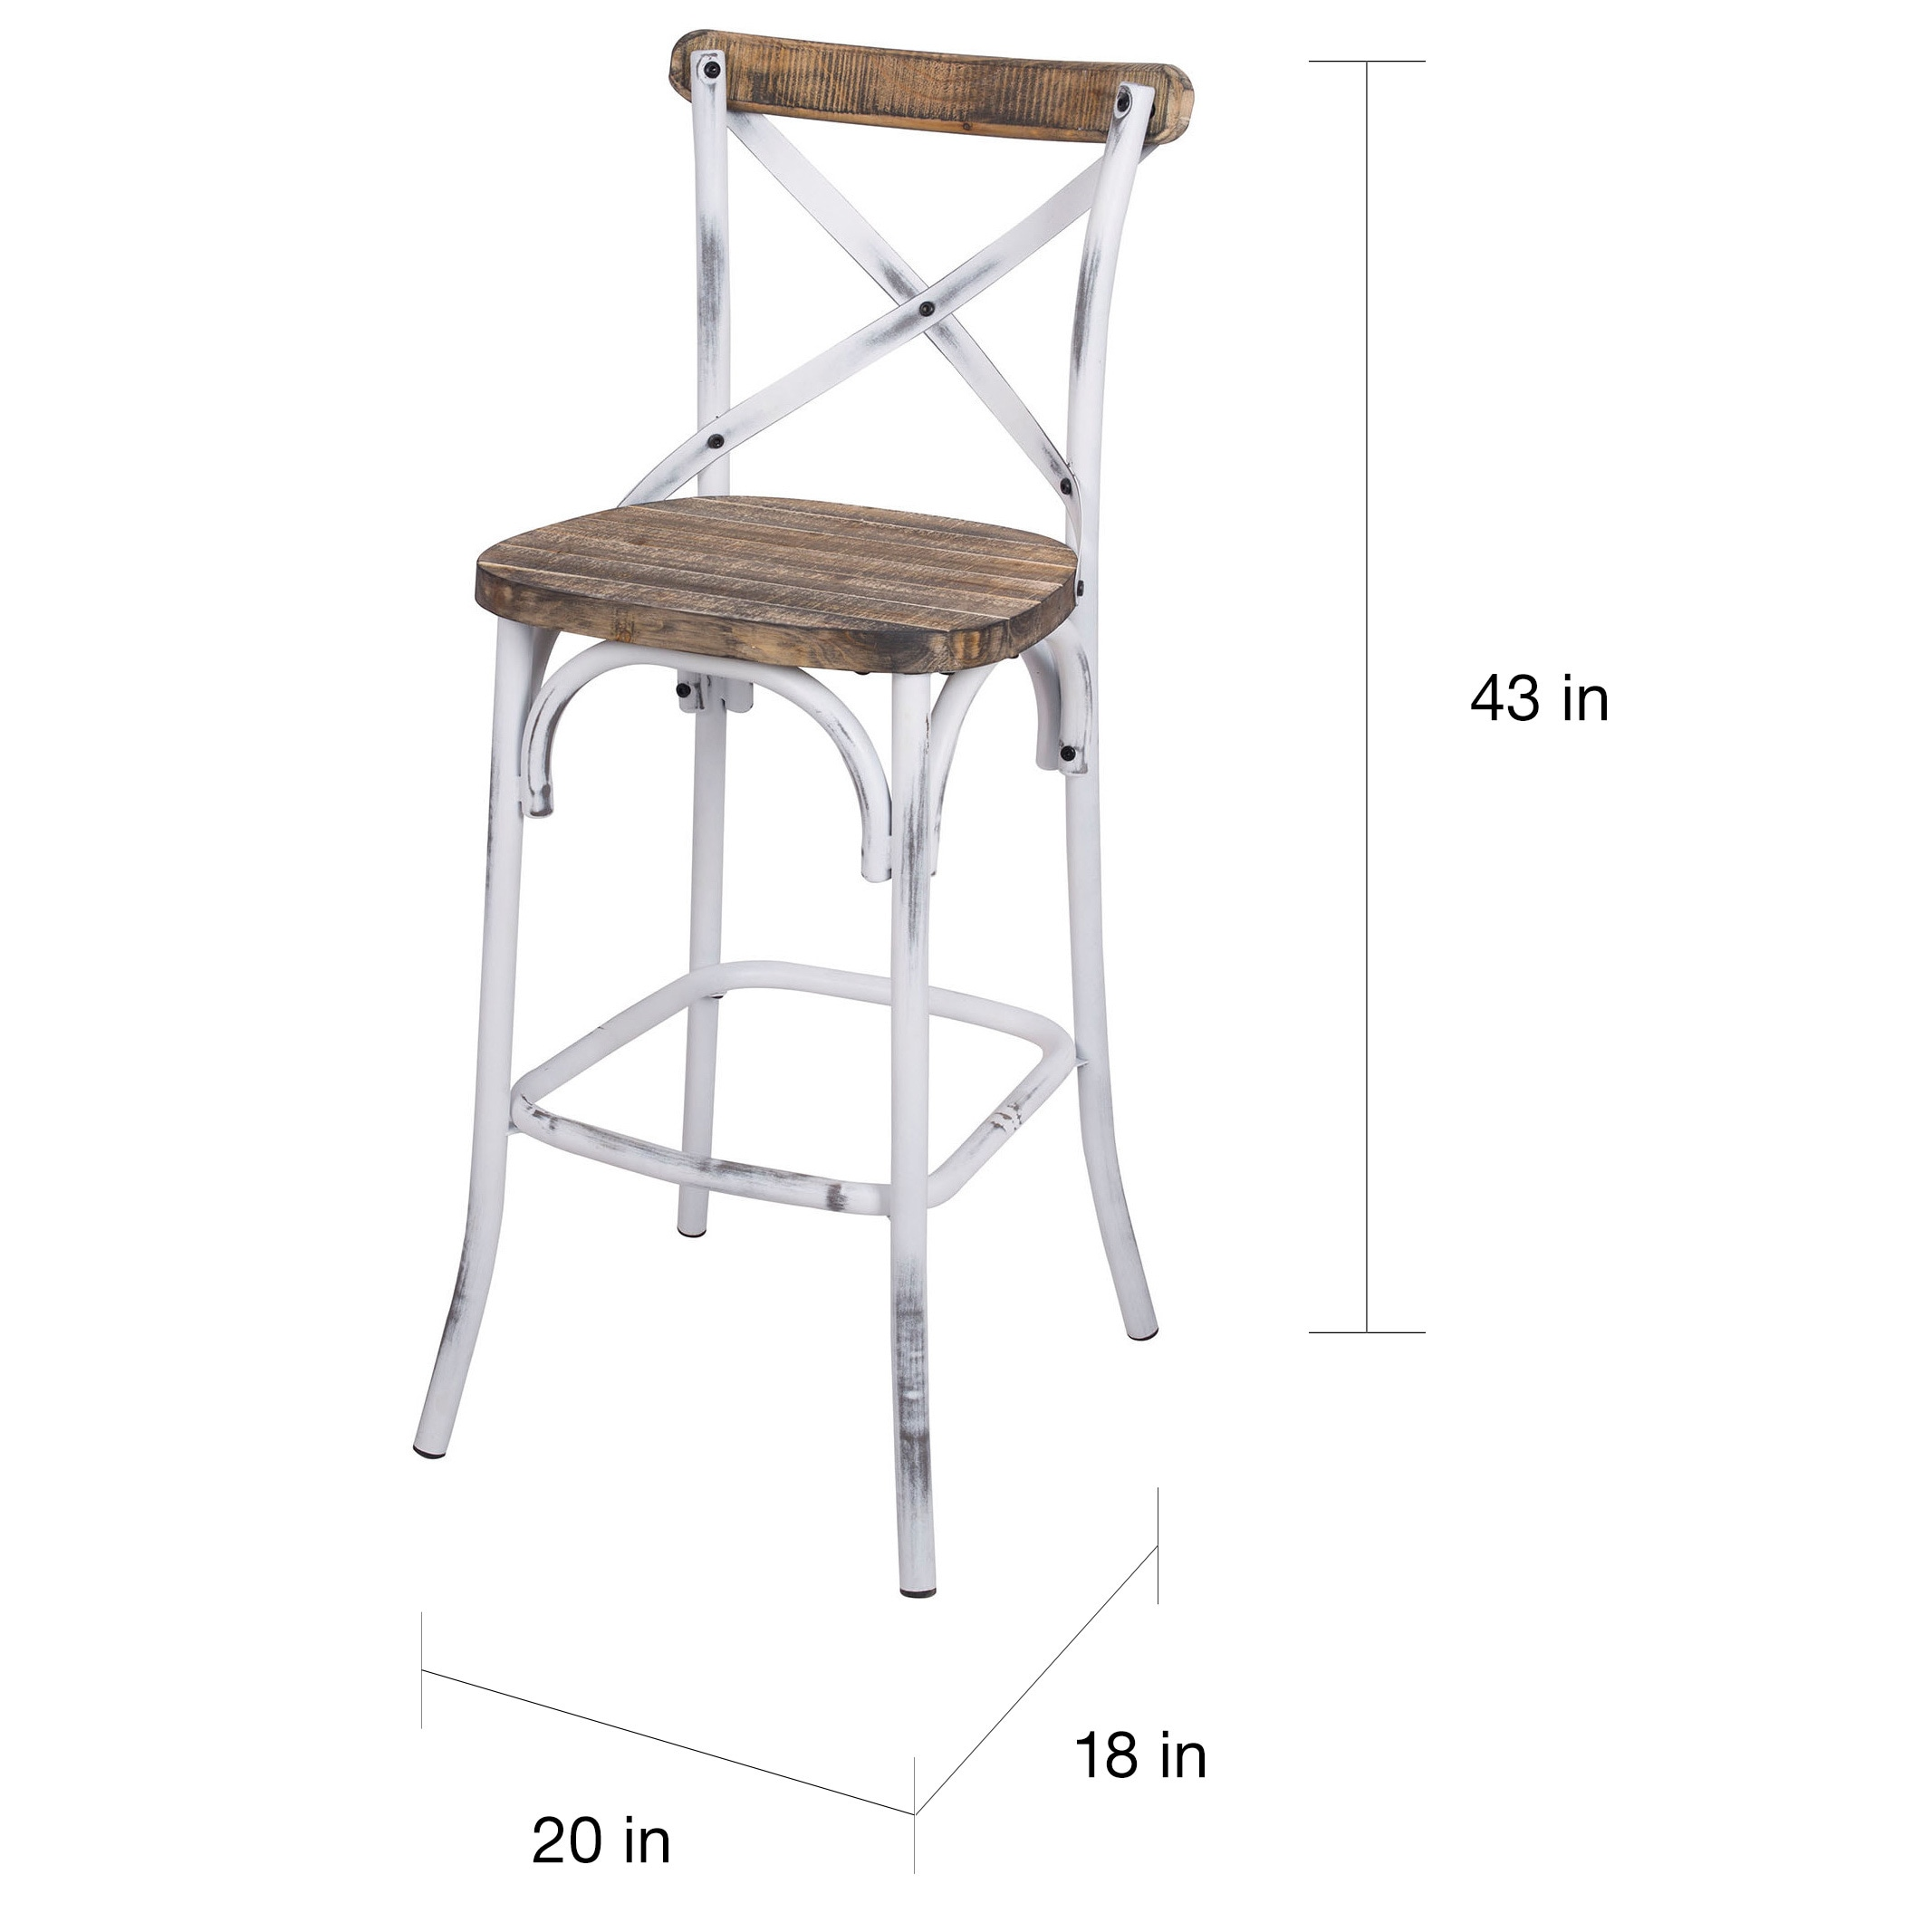 antique white bar stools. Zaire 96642 Walnut-colored Antique White Steel And Wood Bar Chair - Free Shipping Today Overstock 18910554 Stools U